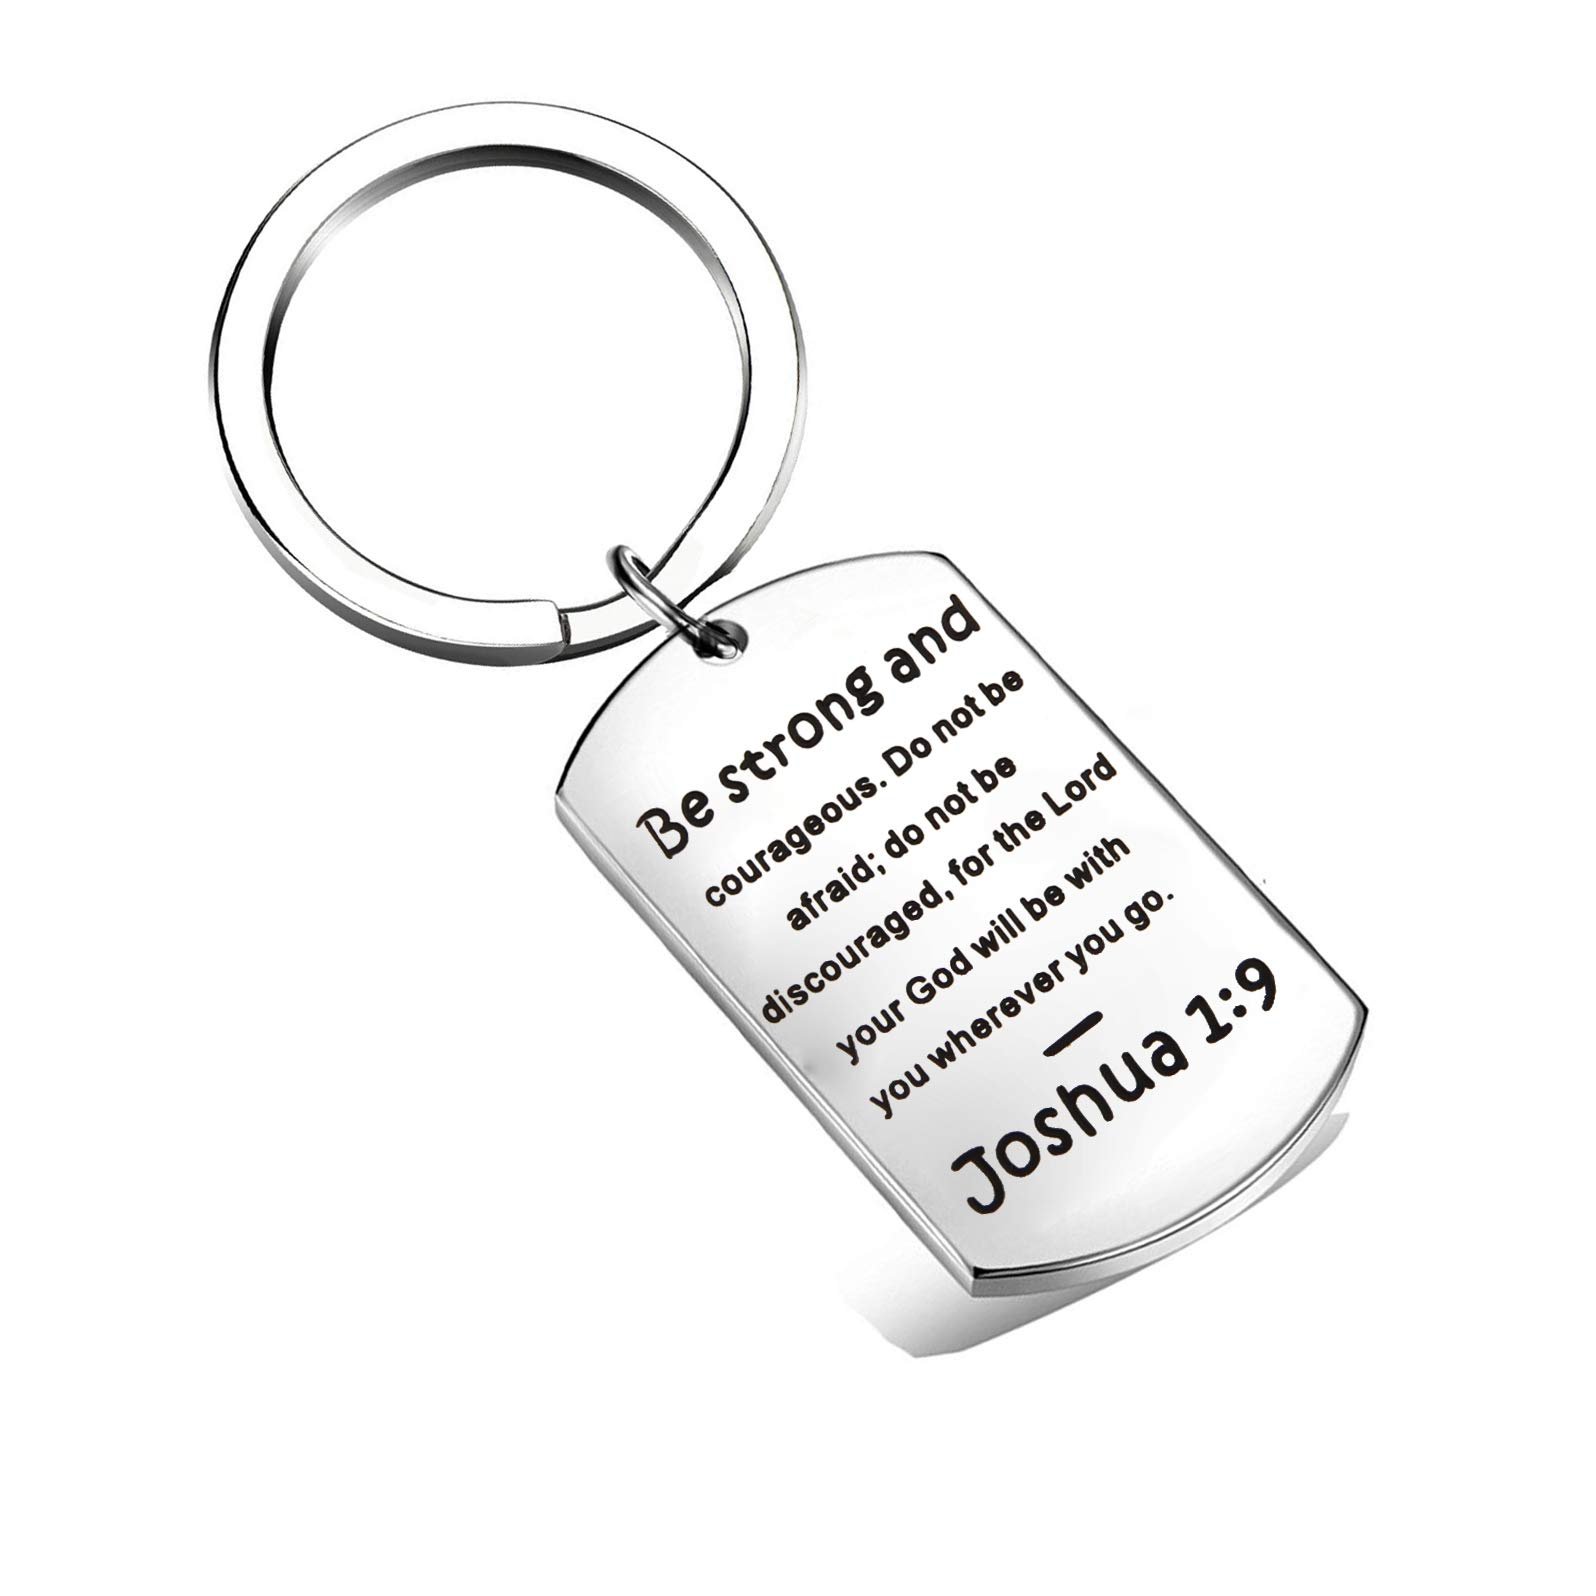 QIIER Christian Keychain Be Strong and Courageous Joshua 1:9 Bible Verse Dog Tag Pendant Keychain Religious Jewelry Inspirational Gifts(Joshua 1:9 Dog Tag) by QIIER